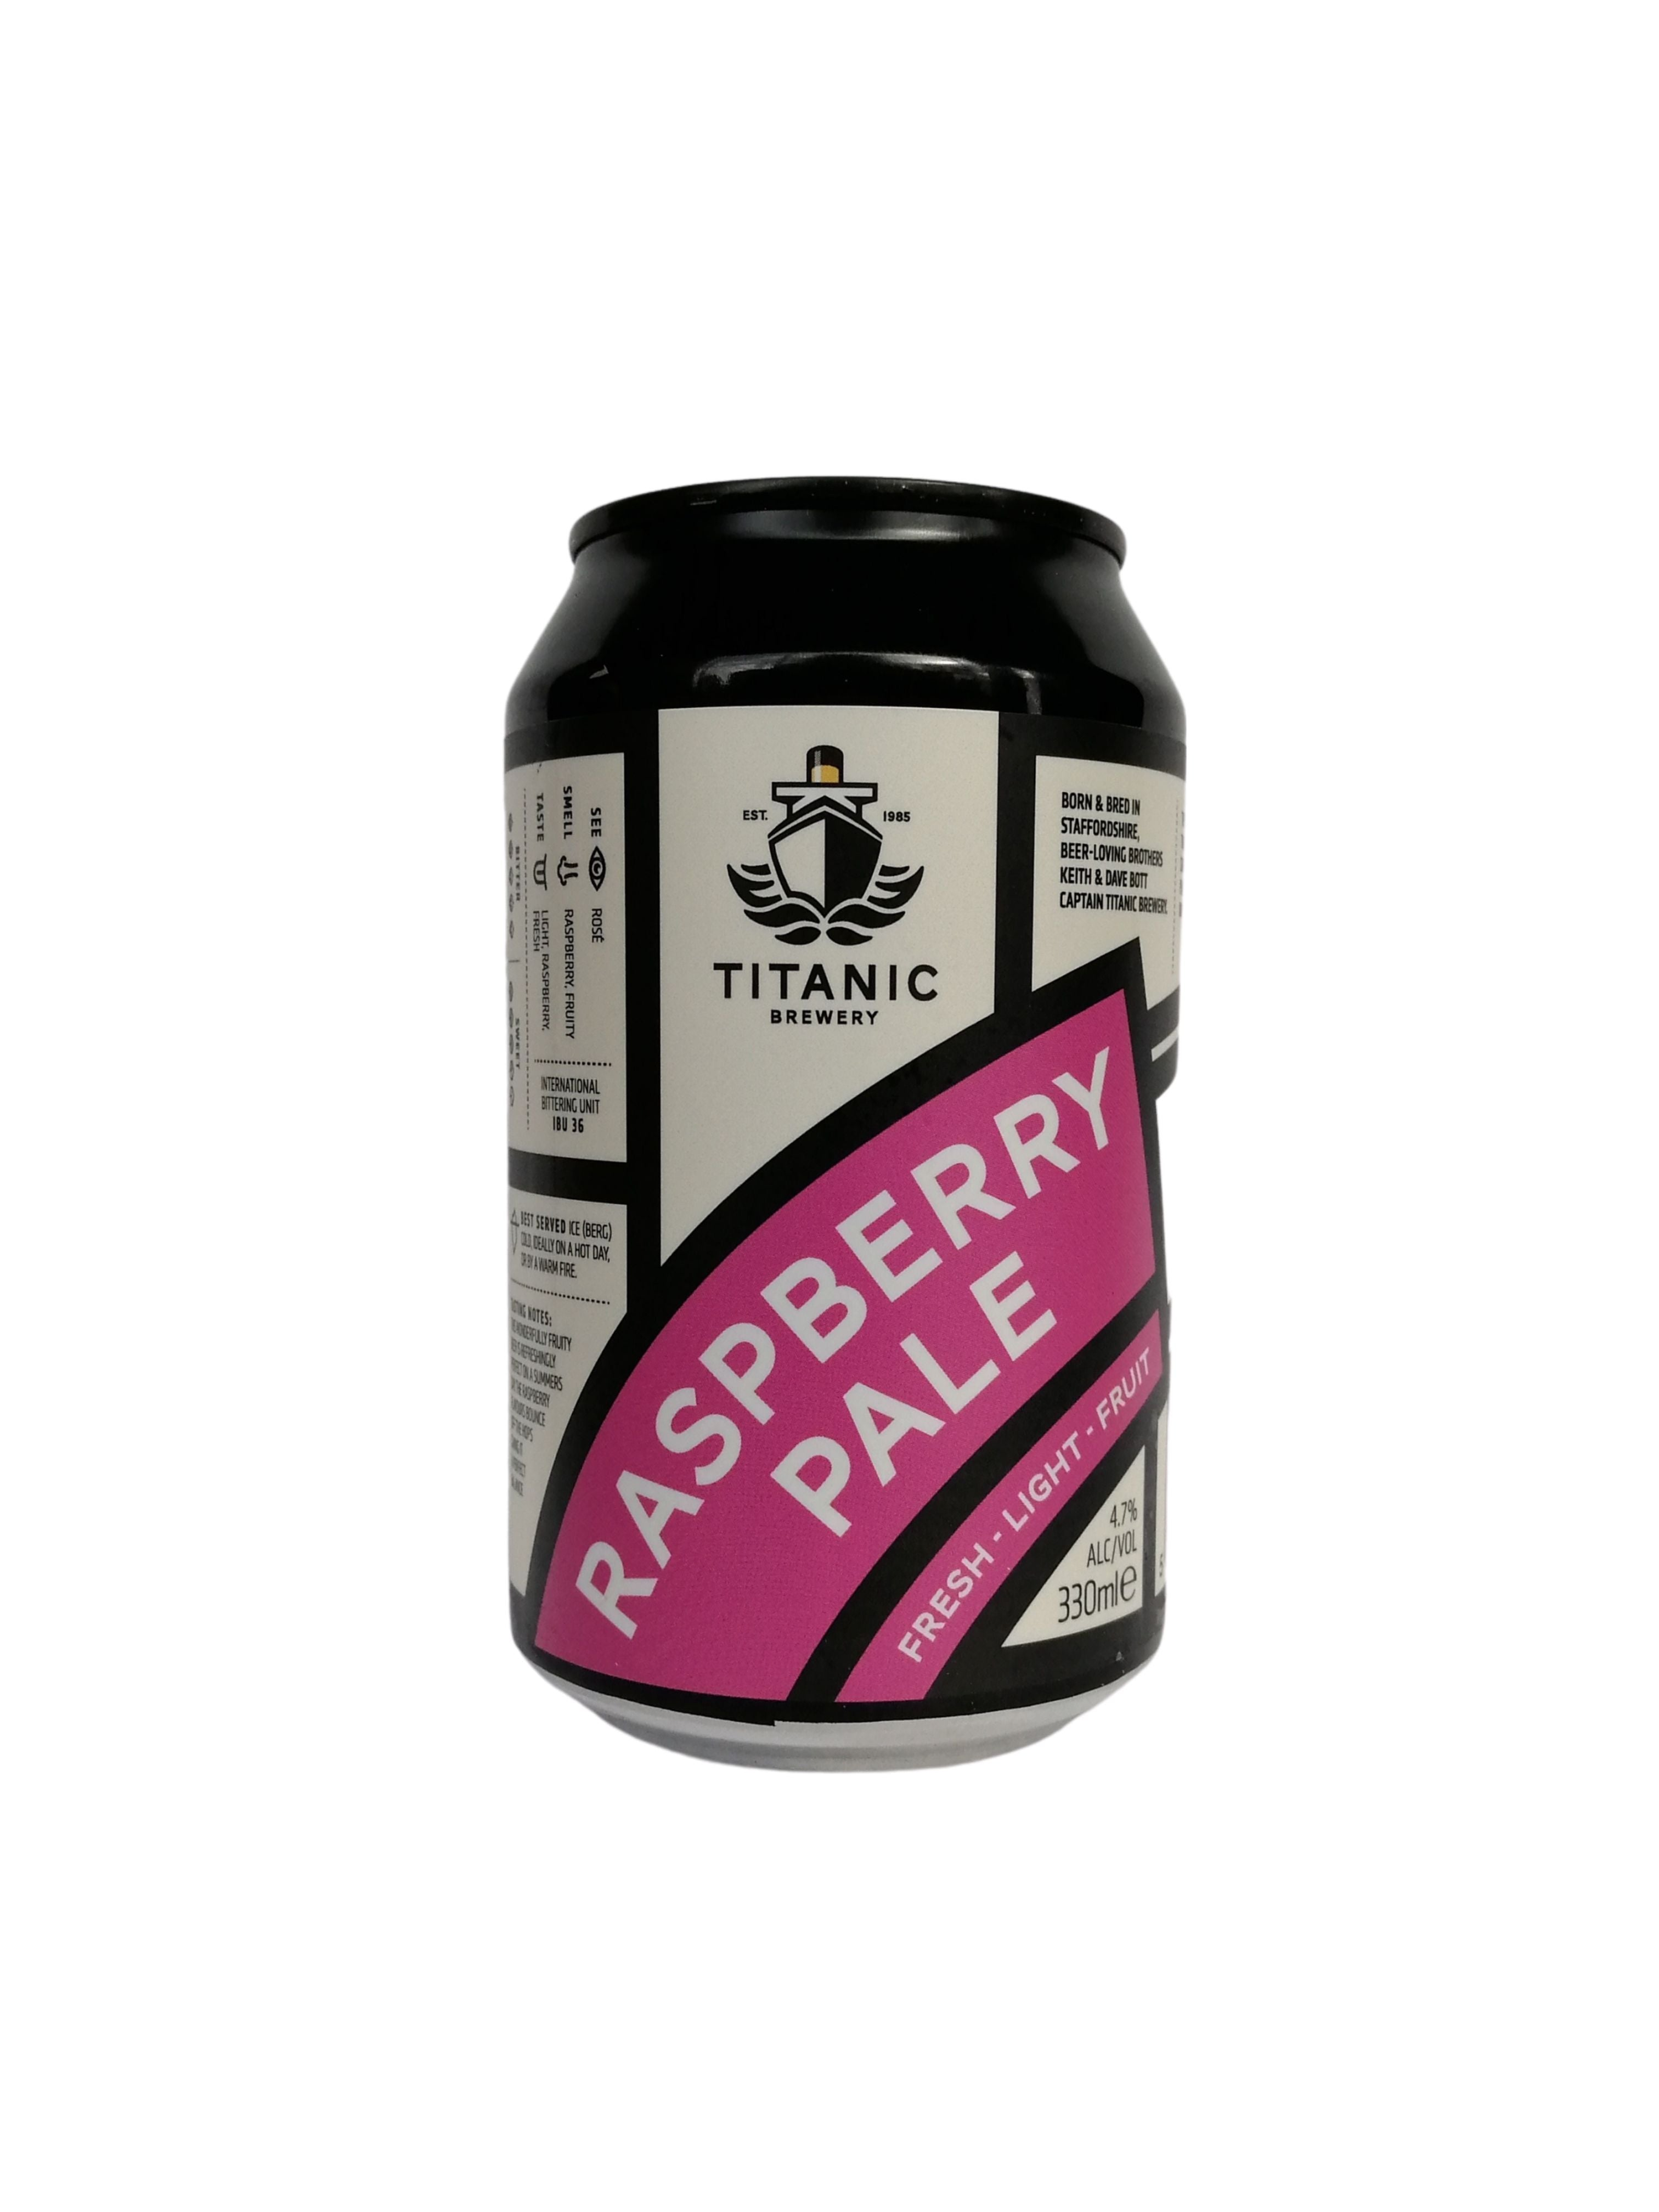 Titanic - Raspberry Pale - Fruit - 4.7% (3.53 UT)